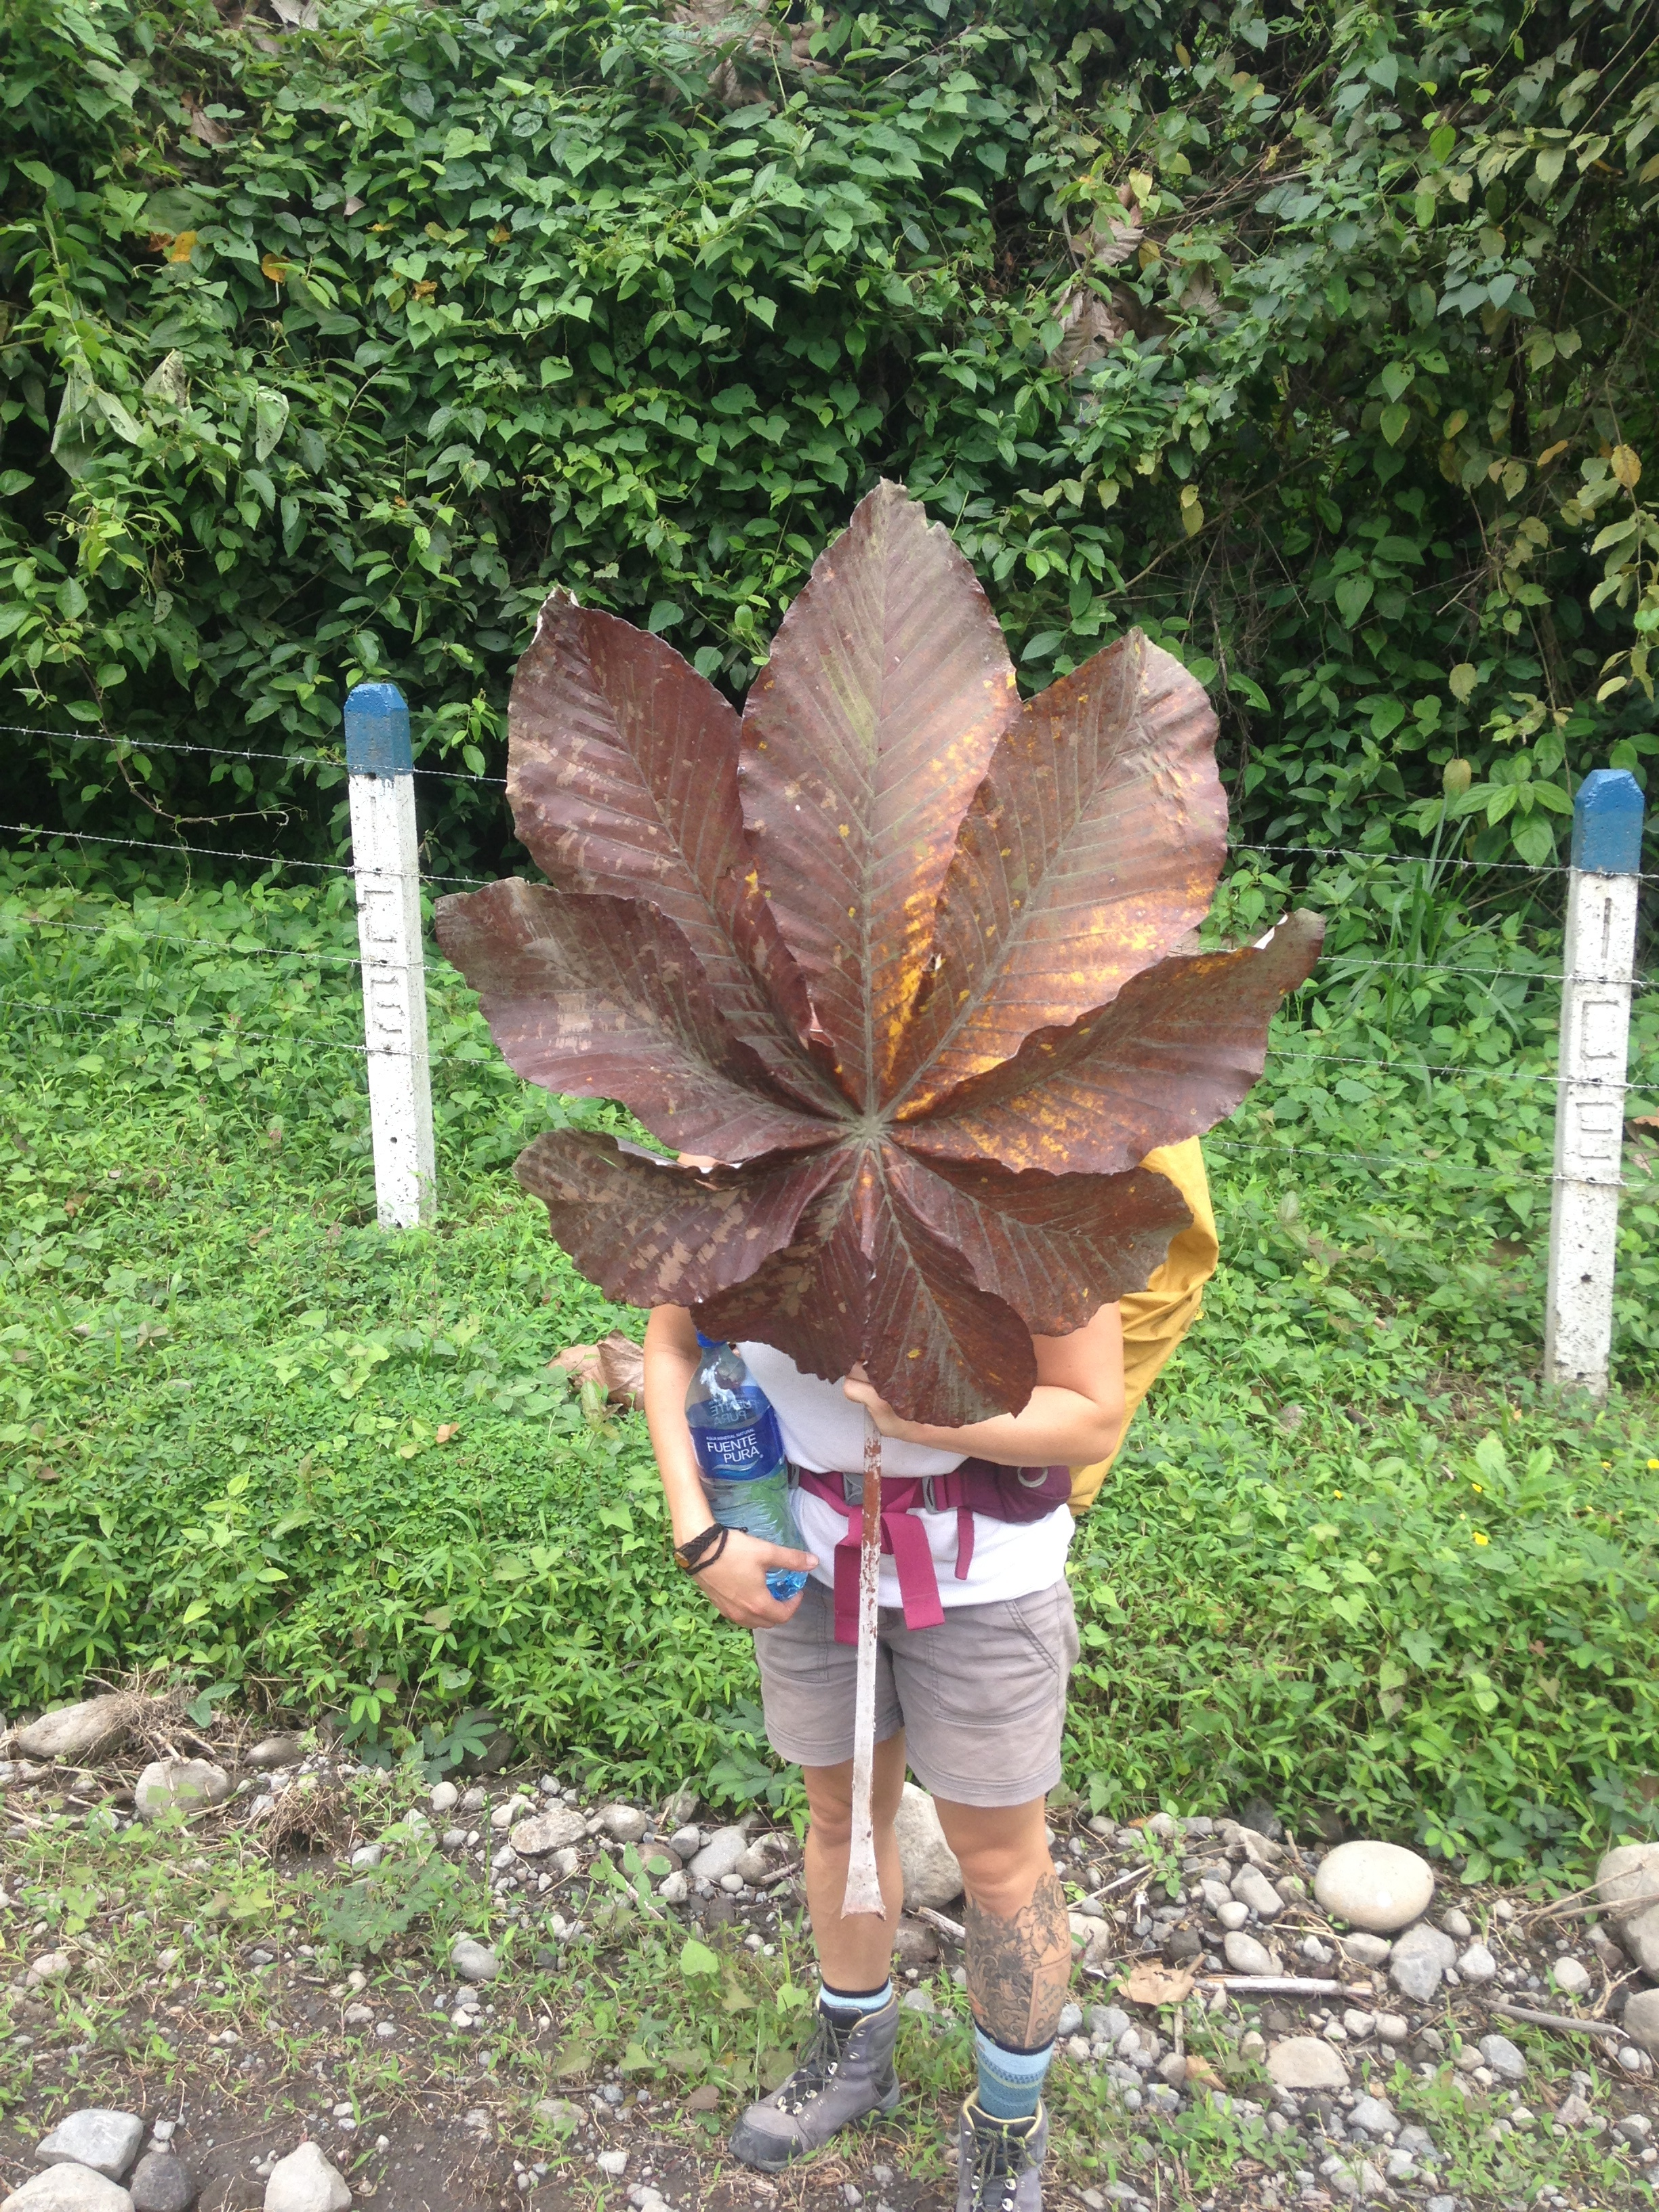 as we walked I found a giant leaf